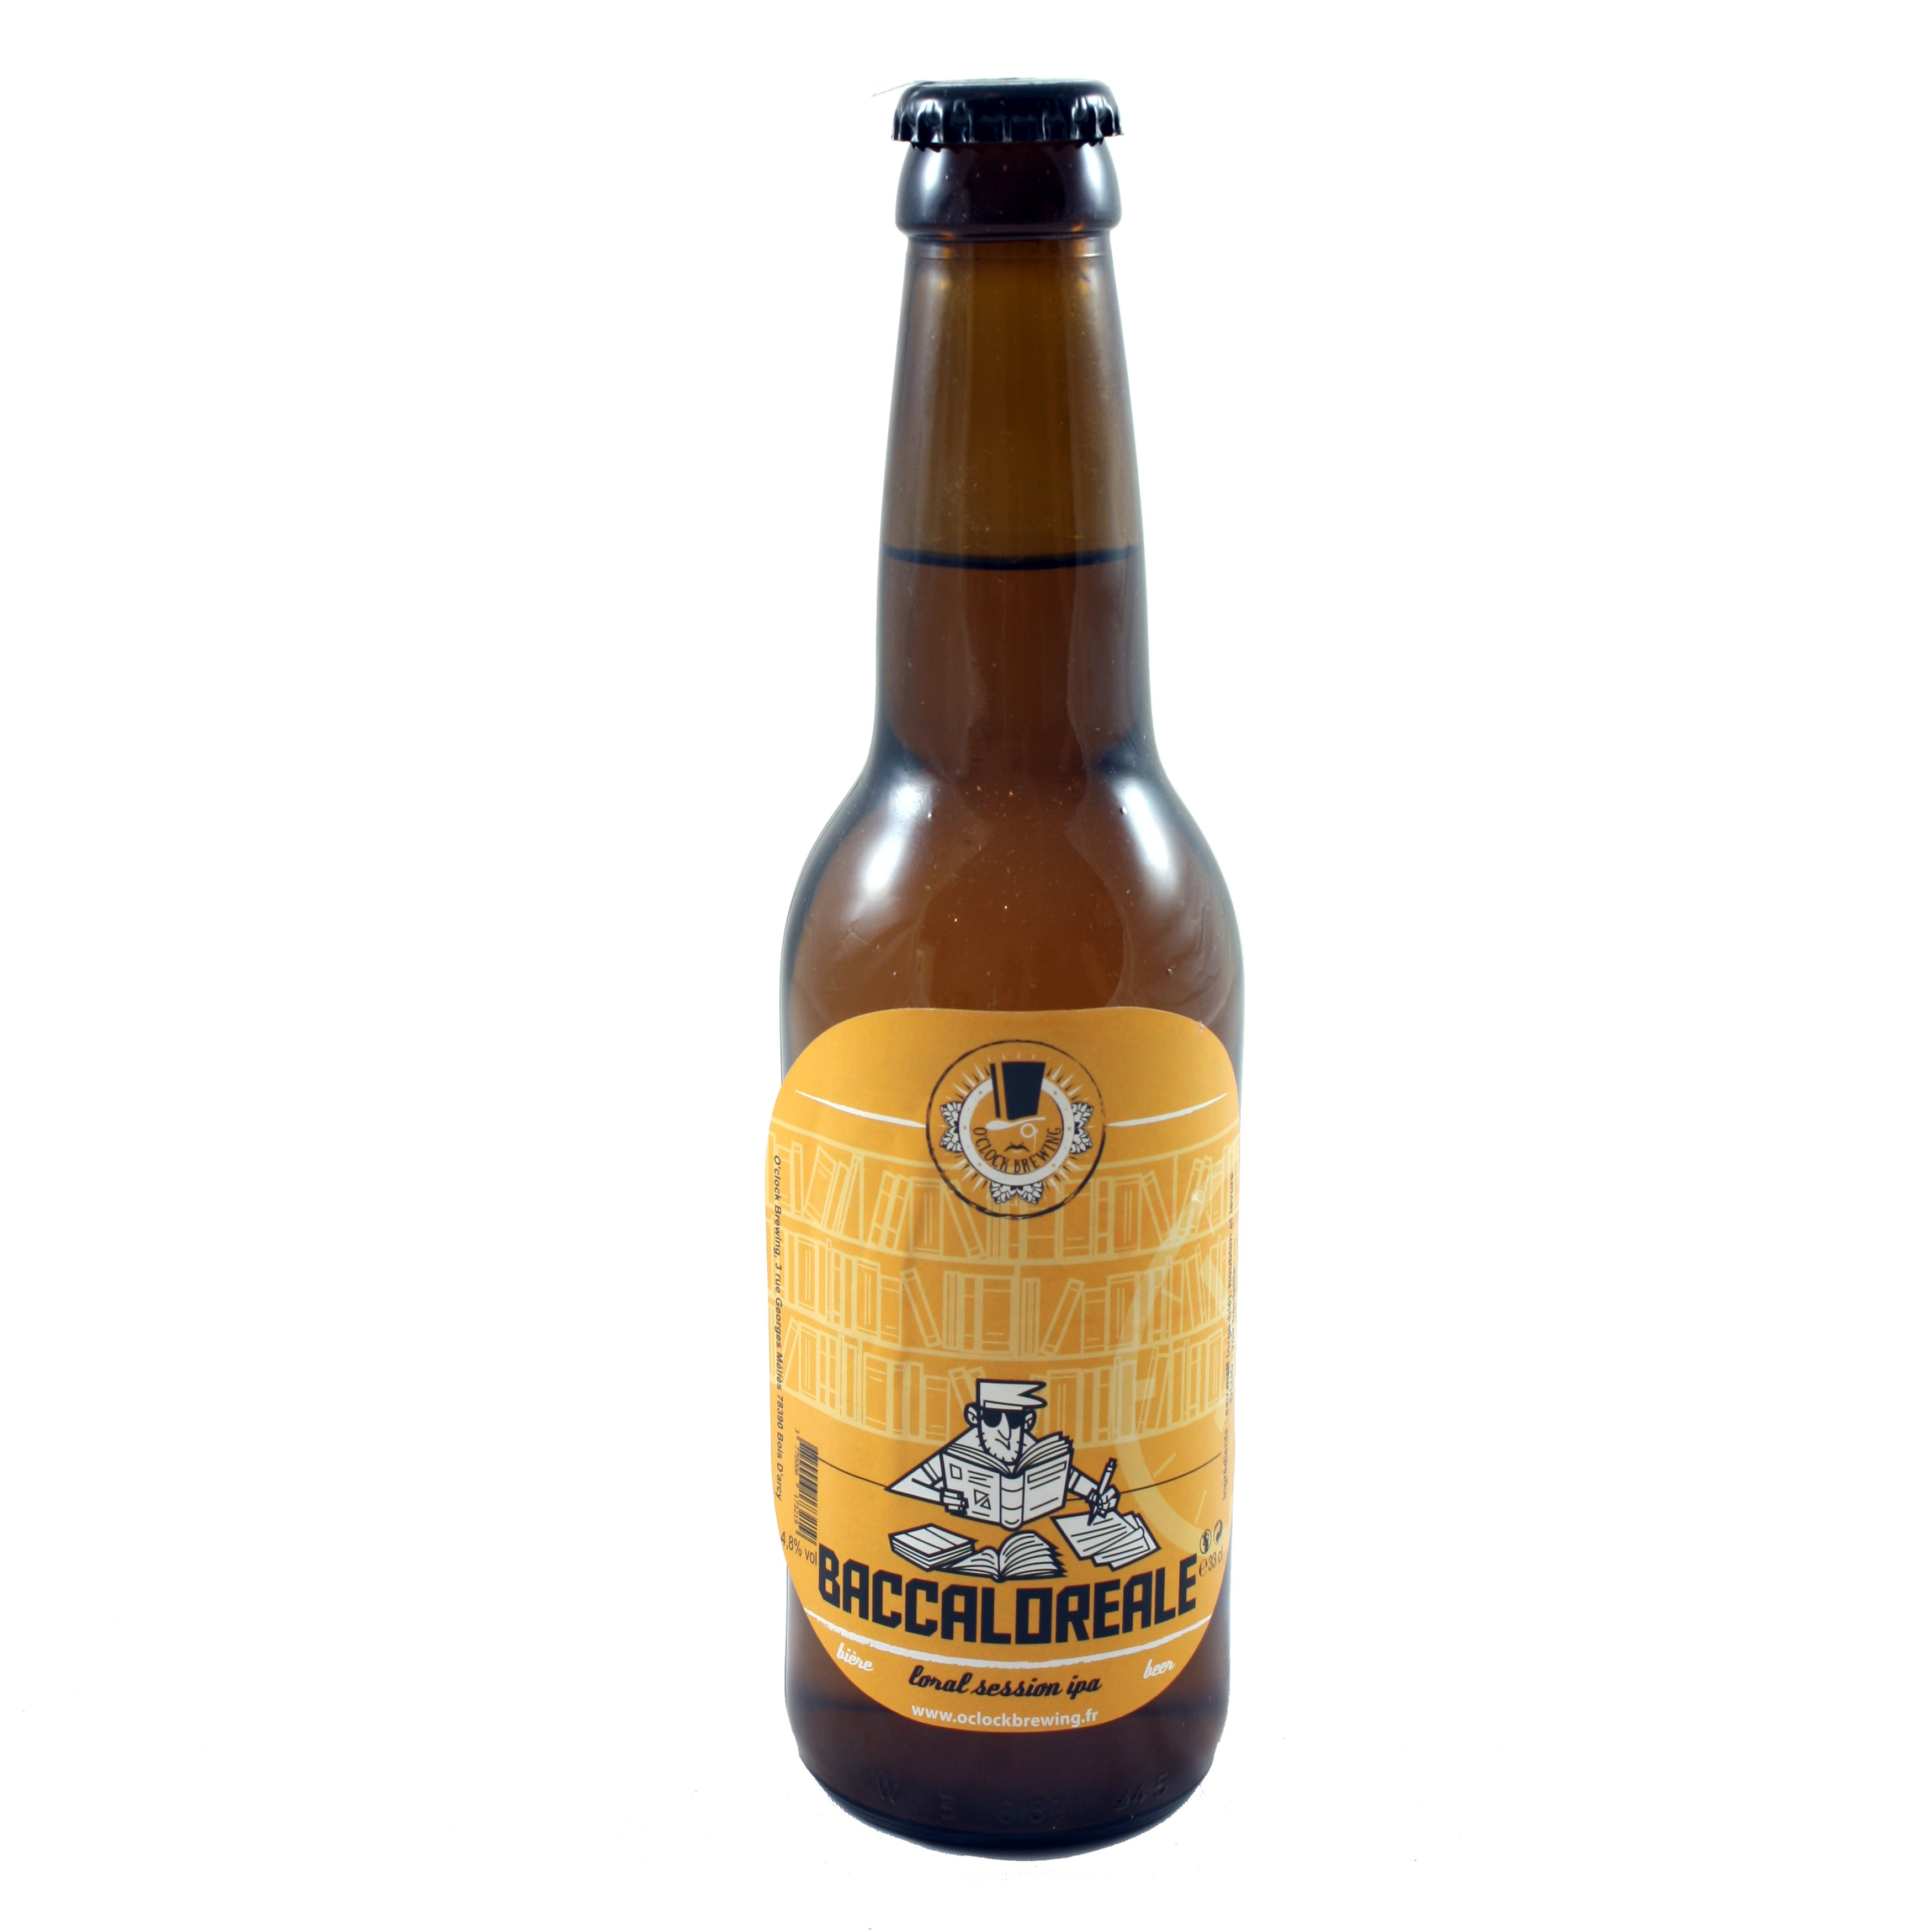 Baccaloreale O'Clock Brewing - 33 cl